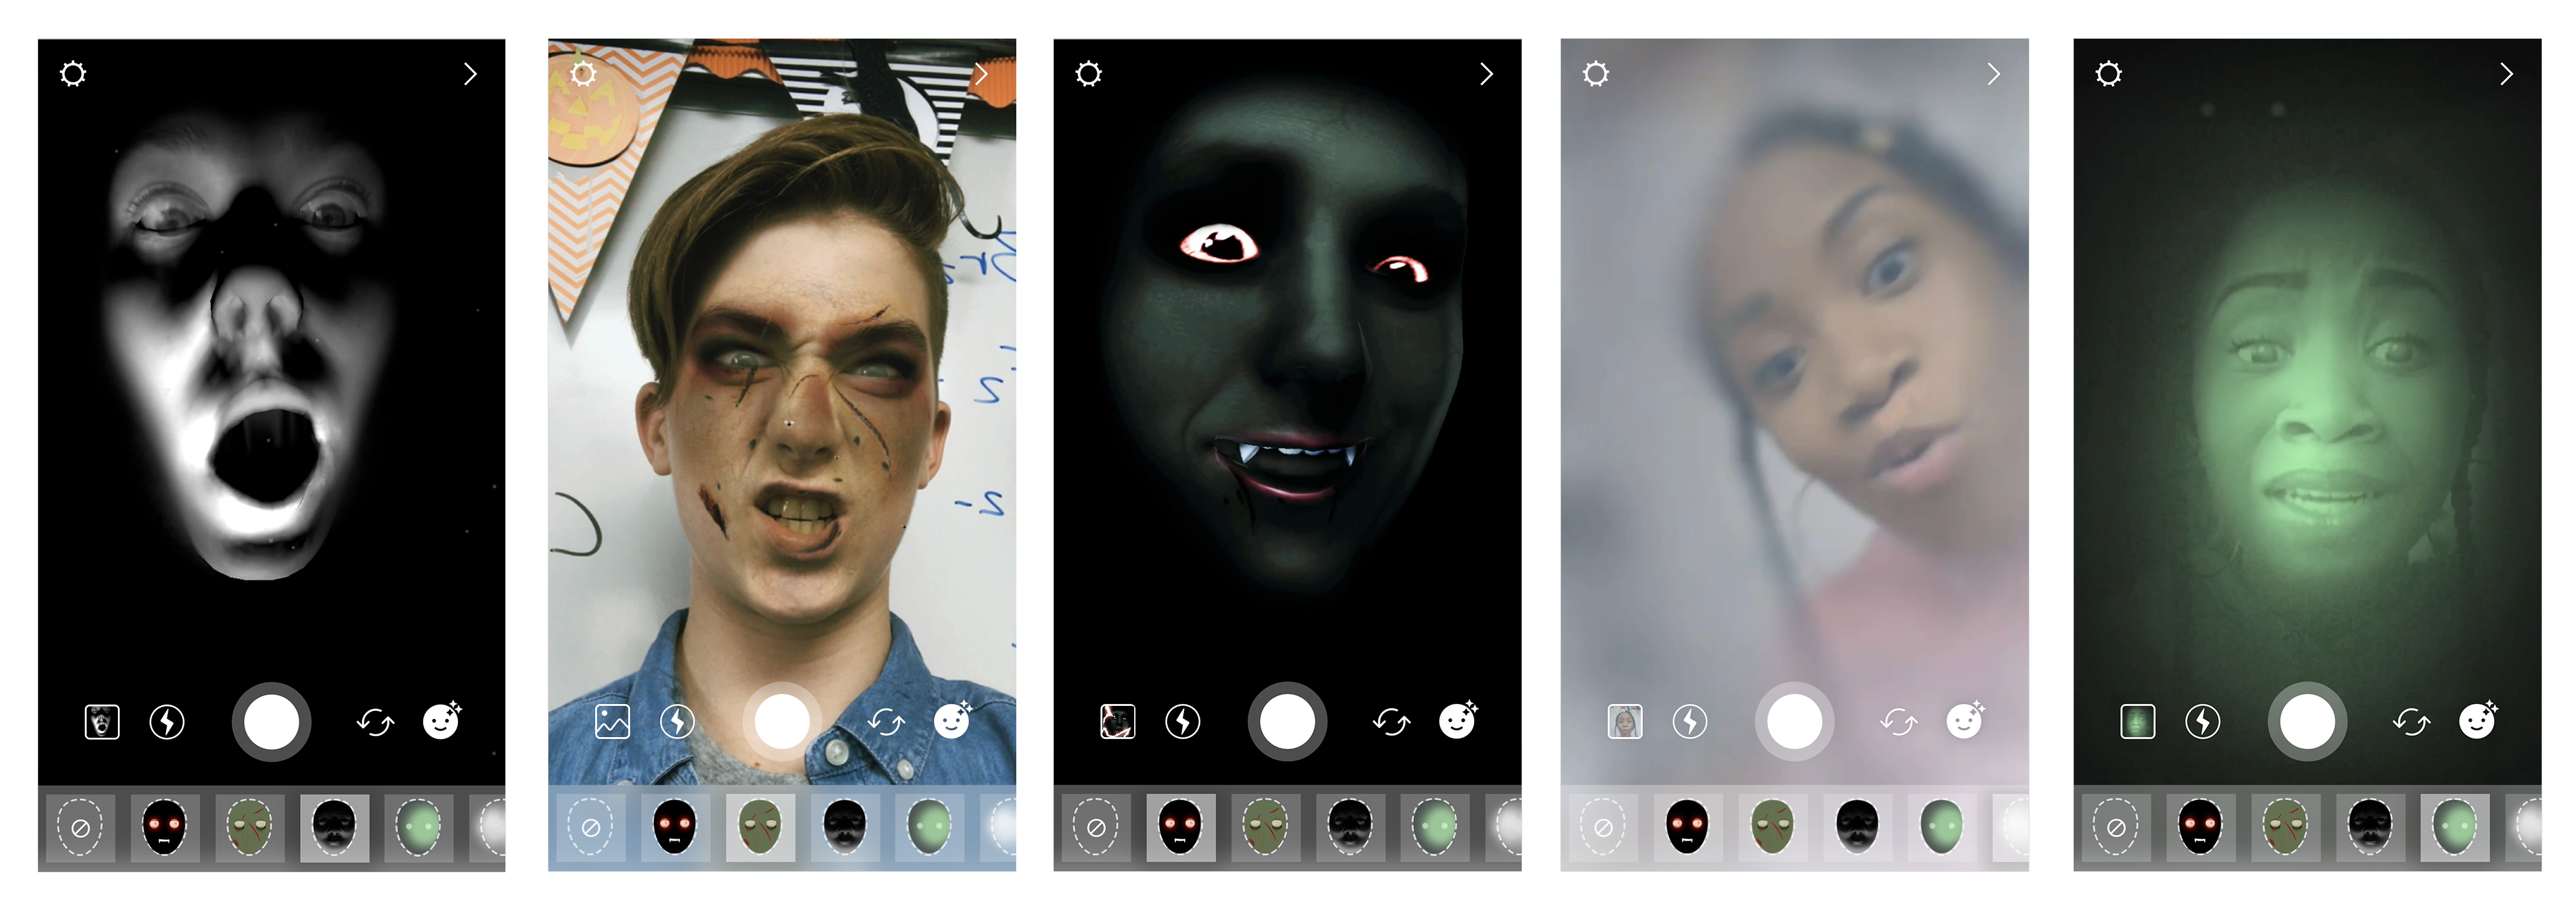 Halloween-Face-Filters-5-up.png